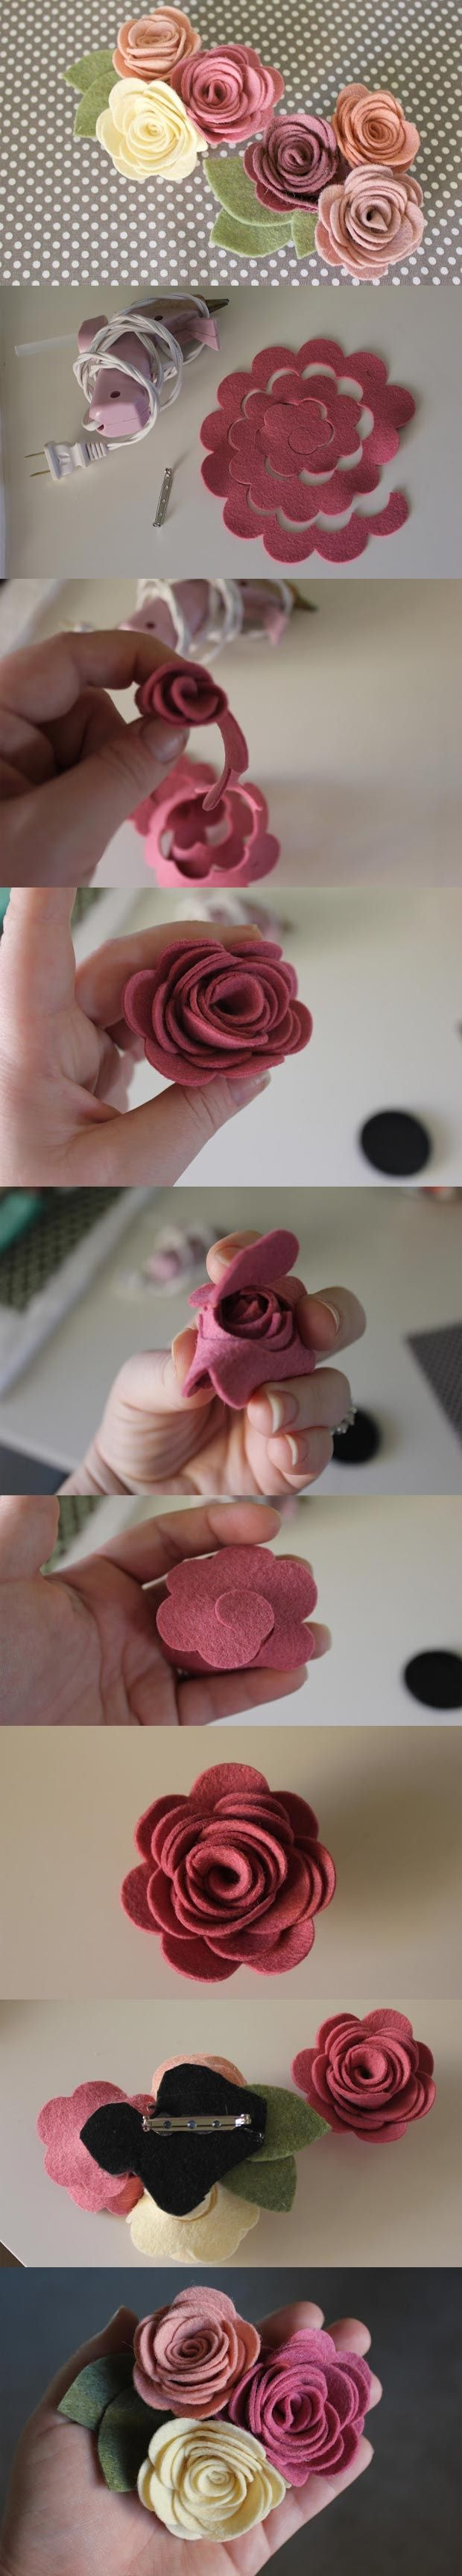 DIY Flower Pins flowers diy crafts home made easy crafts craft idea crafts ideas…